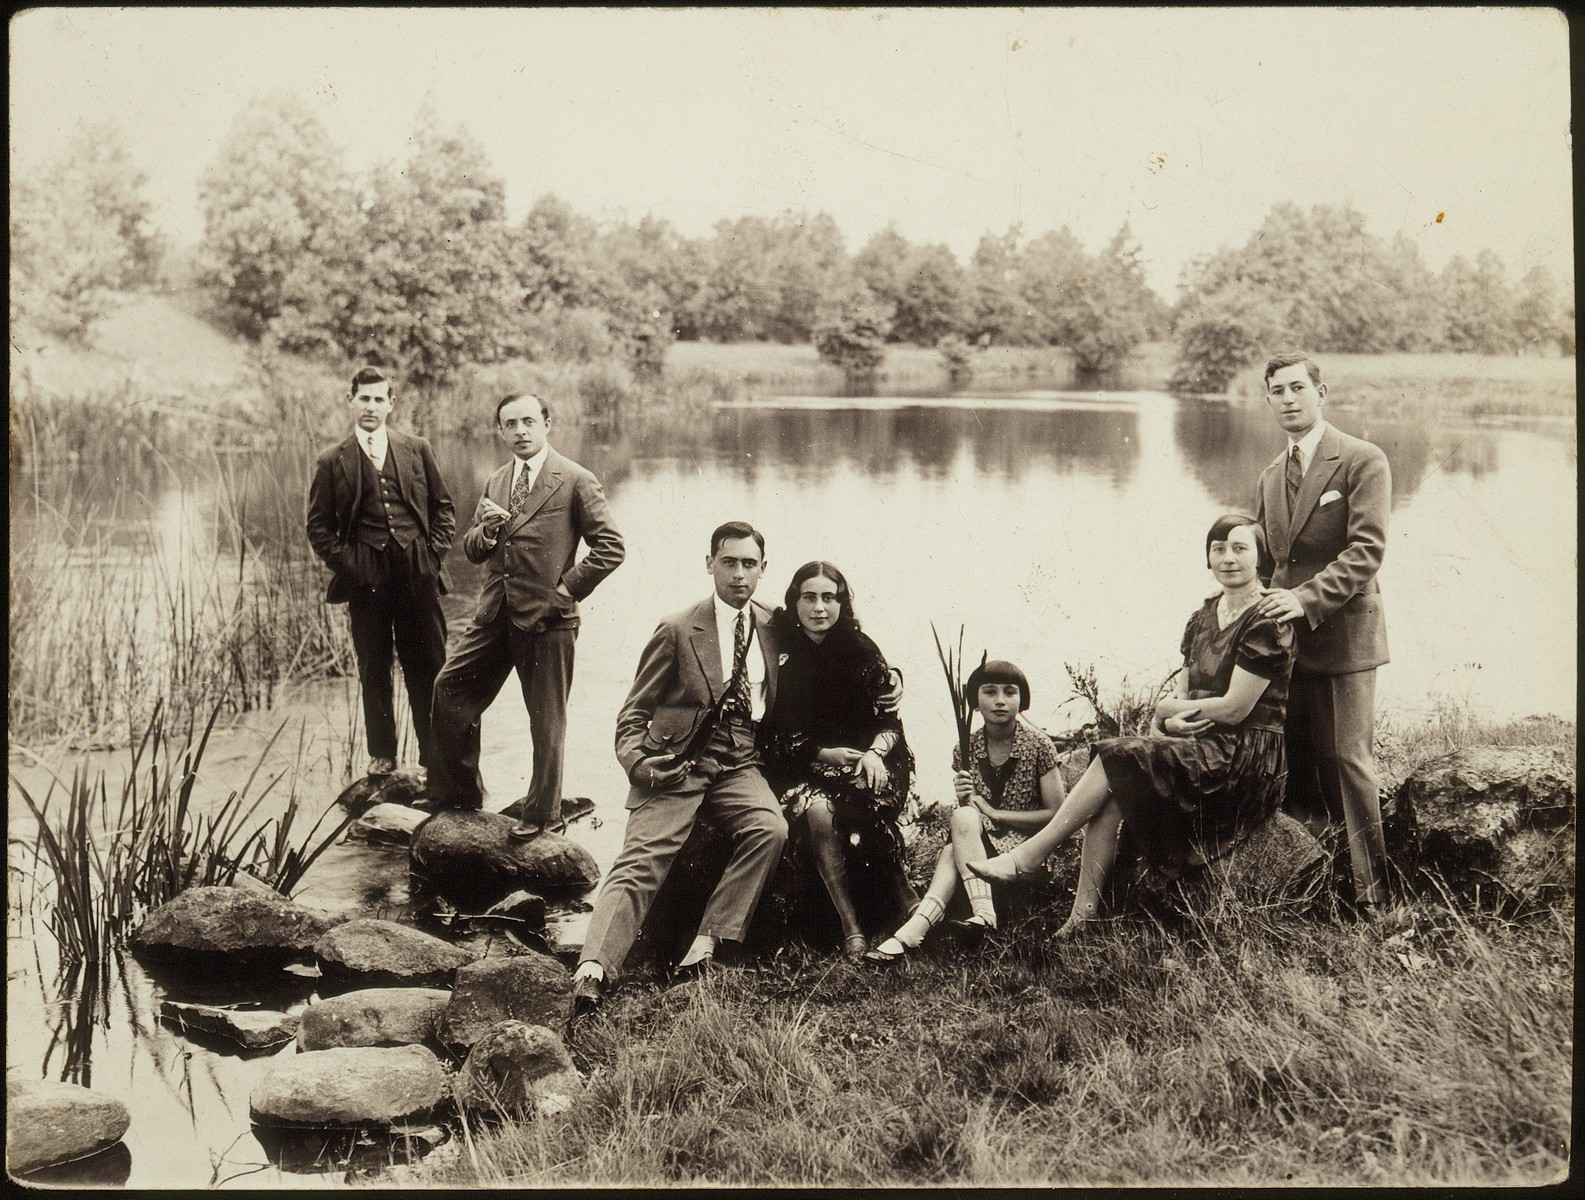 Members of the Kudlanski and Dubrowicz families pose on the shore of a lake near Eisiskes.  Among those pictured are Hanneh-Beile (Moszczenik) Kudlanski (second from the right), her daughter Atara Kudlanski, Leah Dubrowicz and her brother Shaul Dubrowicz.  The Kudlanski family immigrated to America; the Dubrowiczes perished during the Holocaust.